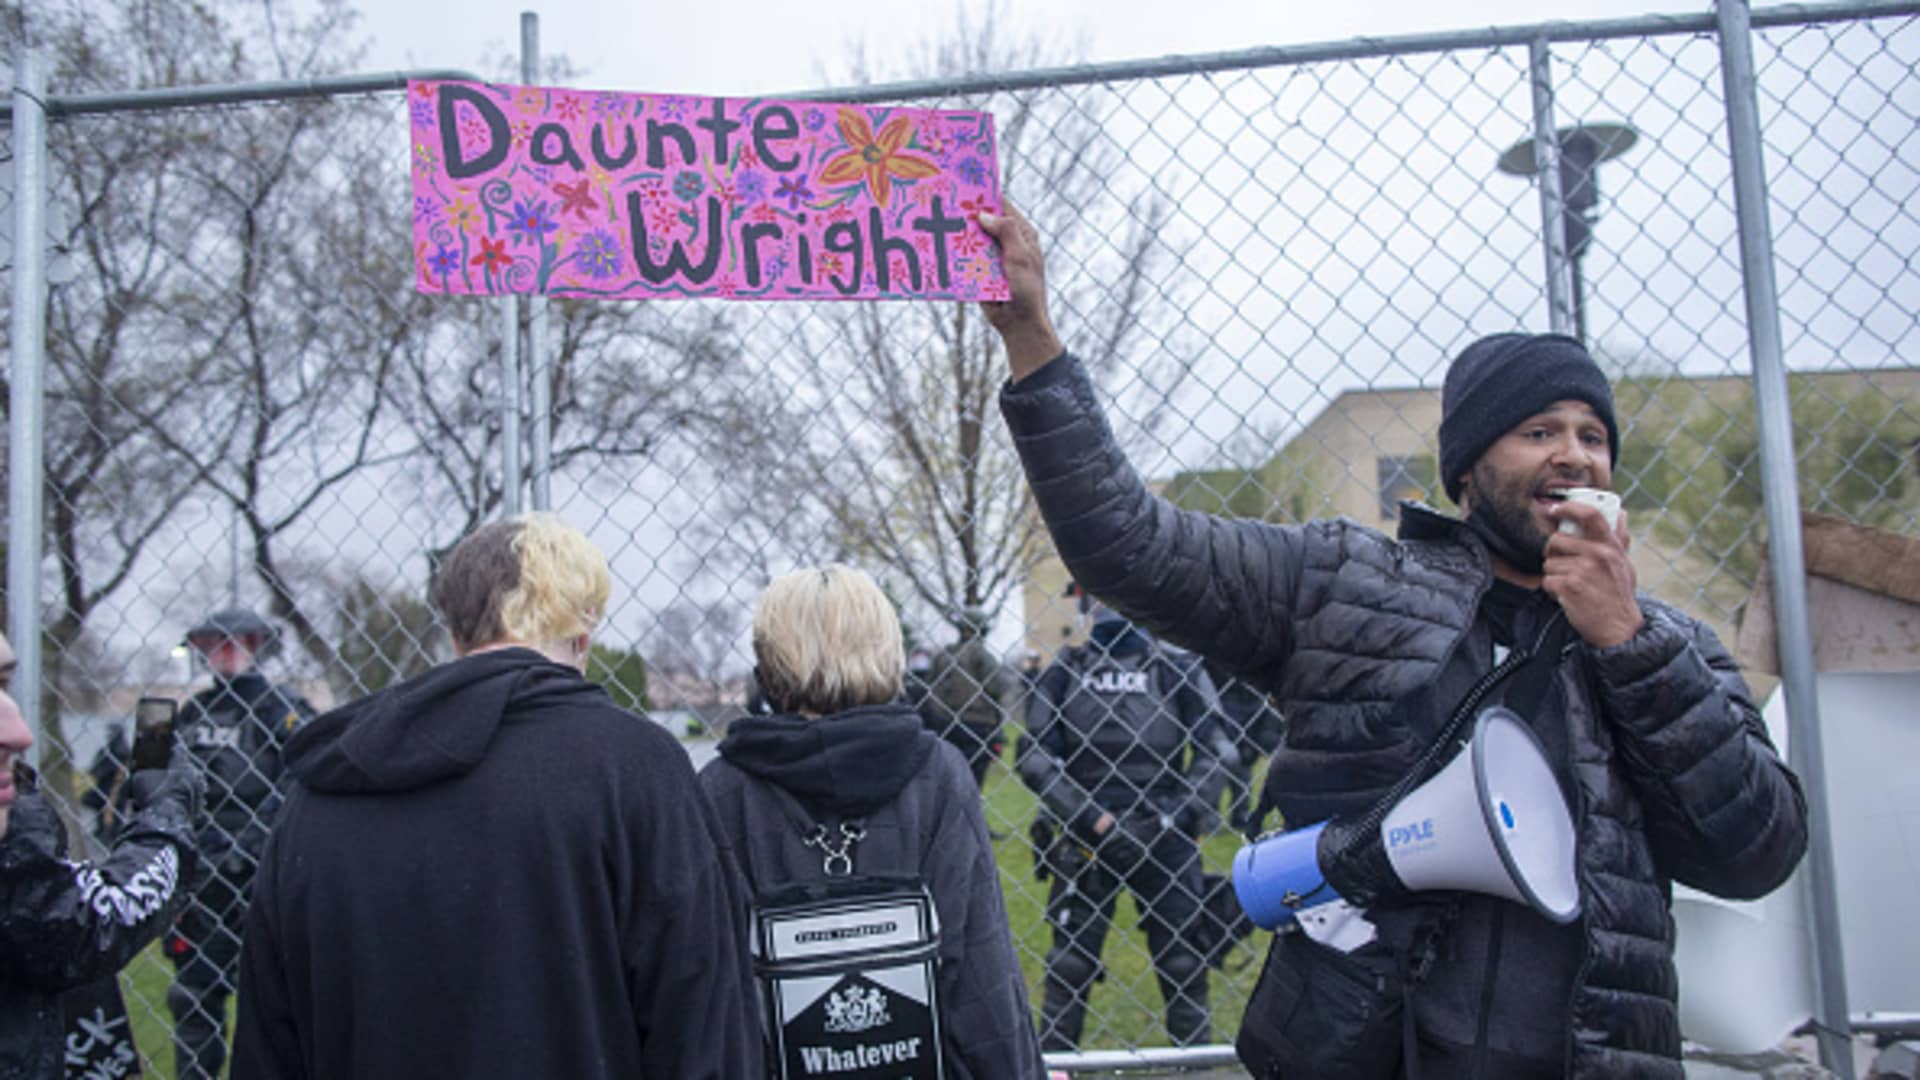 Activist Jonathan Mason holds a Daunte Wright sign in front of the crowd of protesters that gathered to protest the police killing of Daunte Wright in Brooklyn Center, Minnesota, U.S., on April 13, 2021.